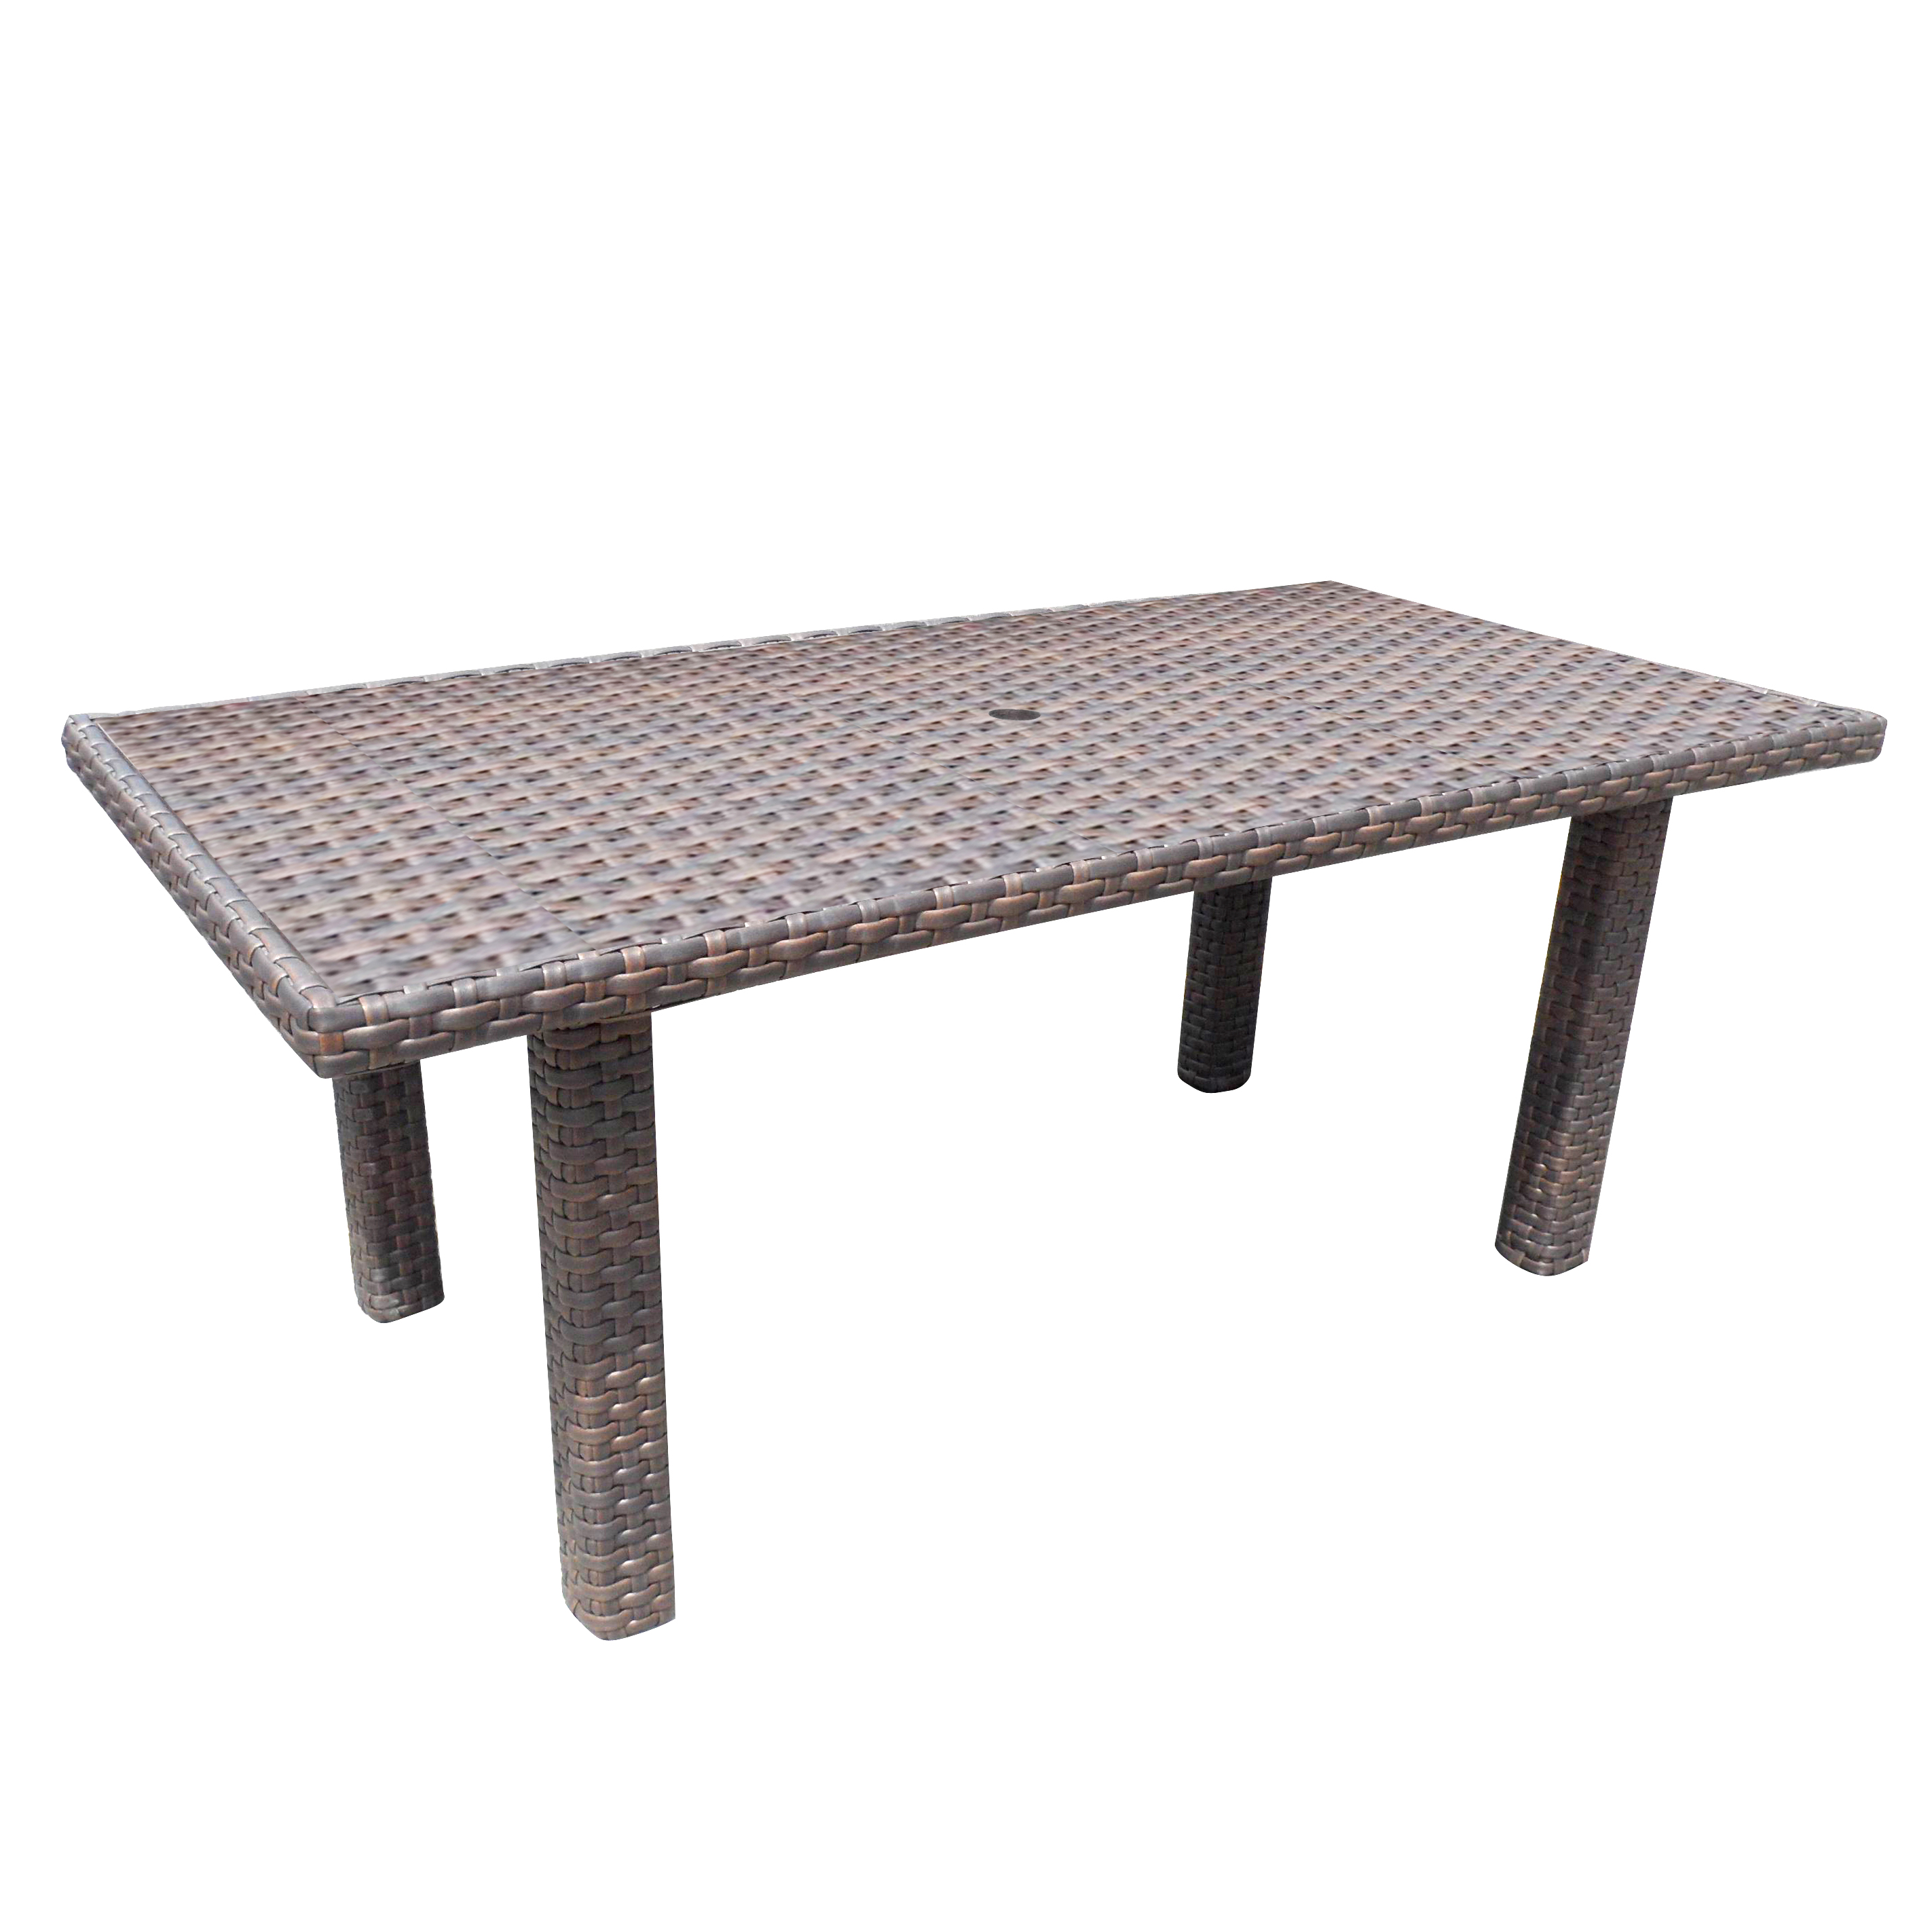 COVERSATION TABLE RC1602 $410.00